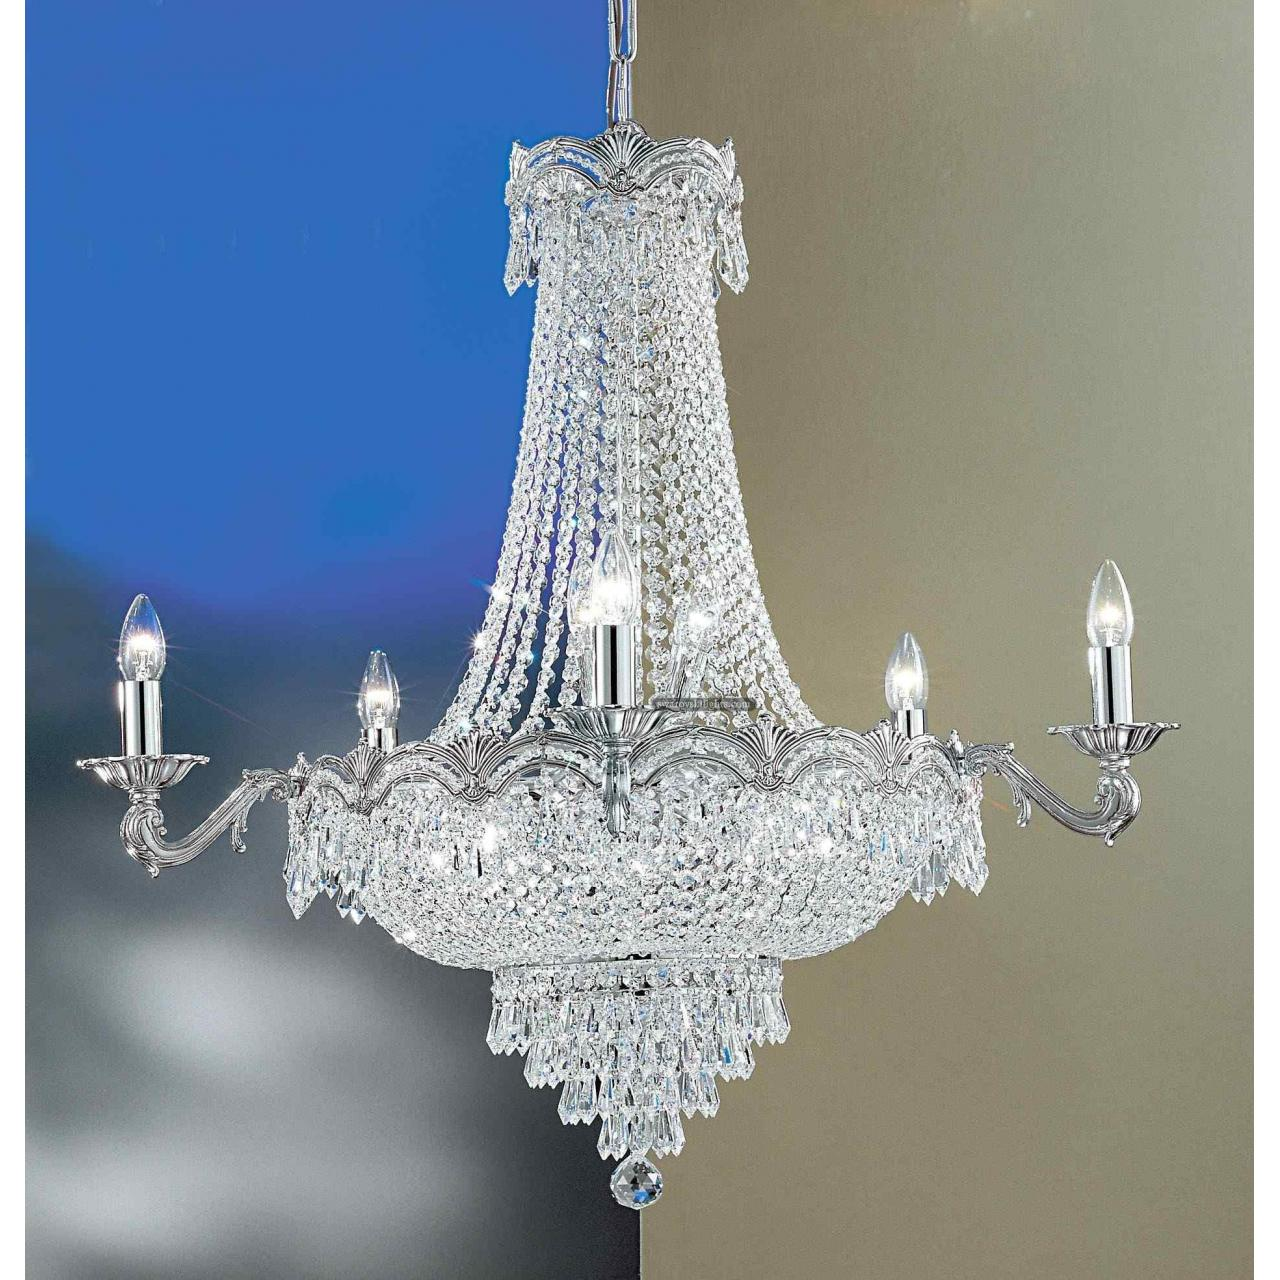 Silver Crystal Chandelier Images Images Of Silver Crystal Chandelier